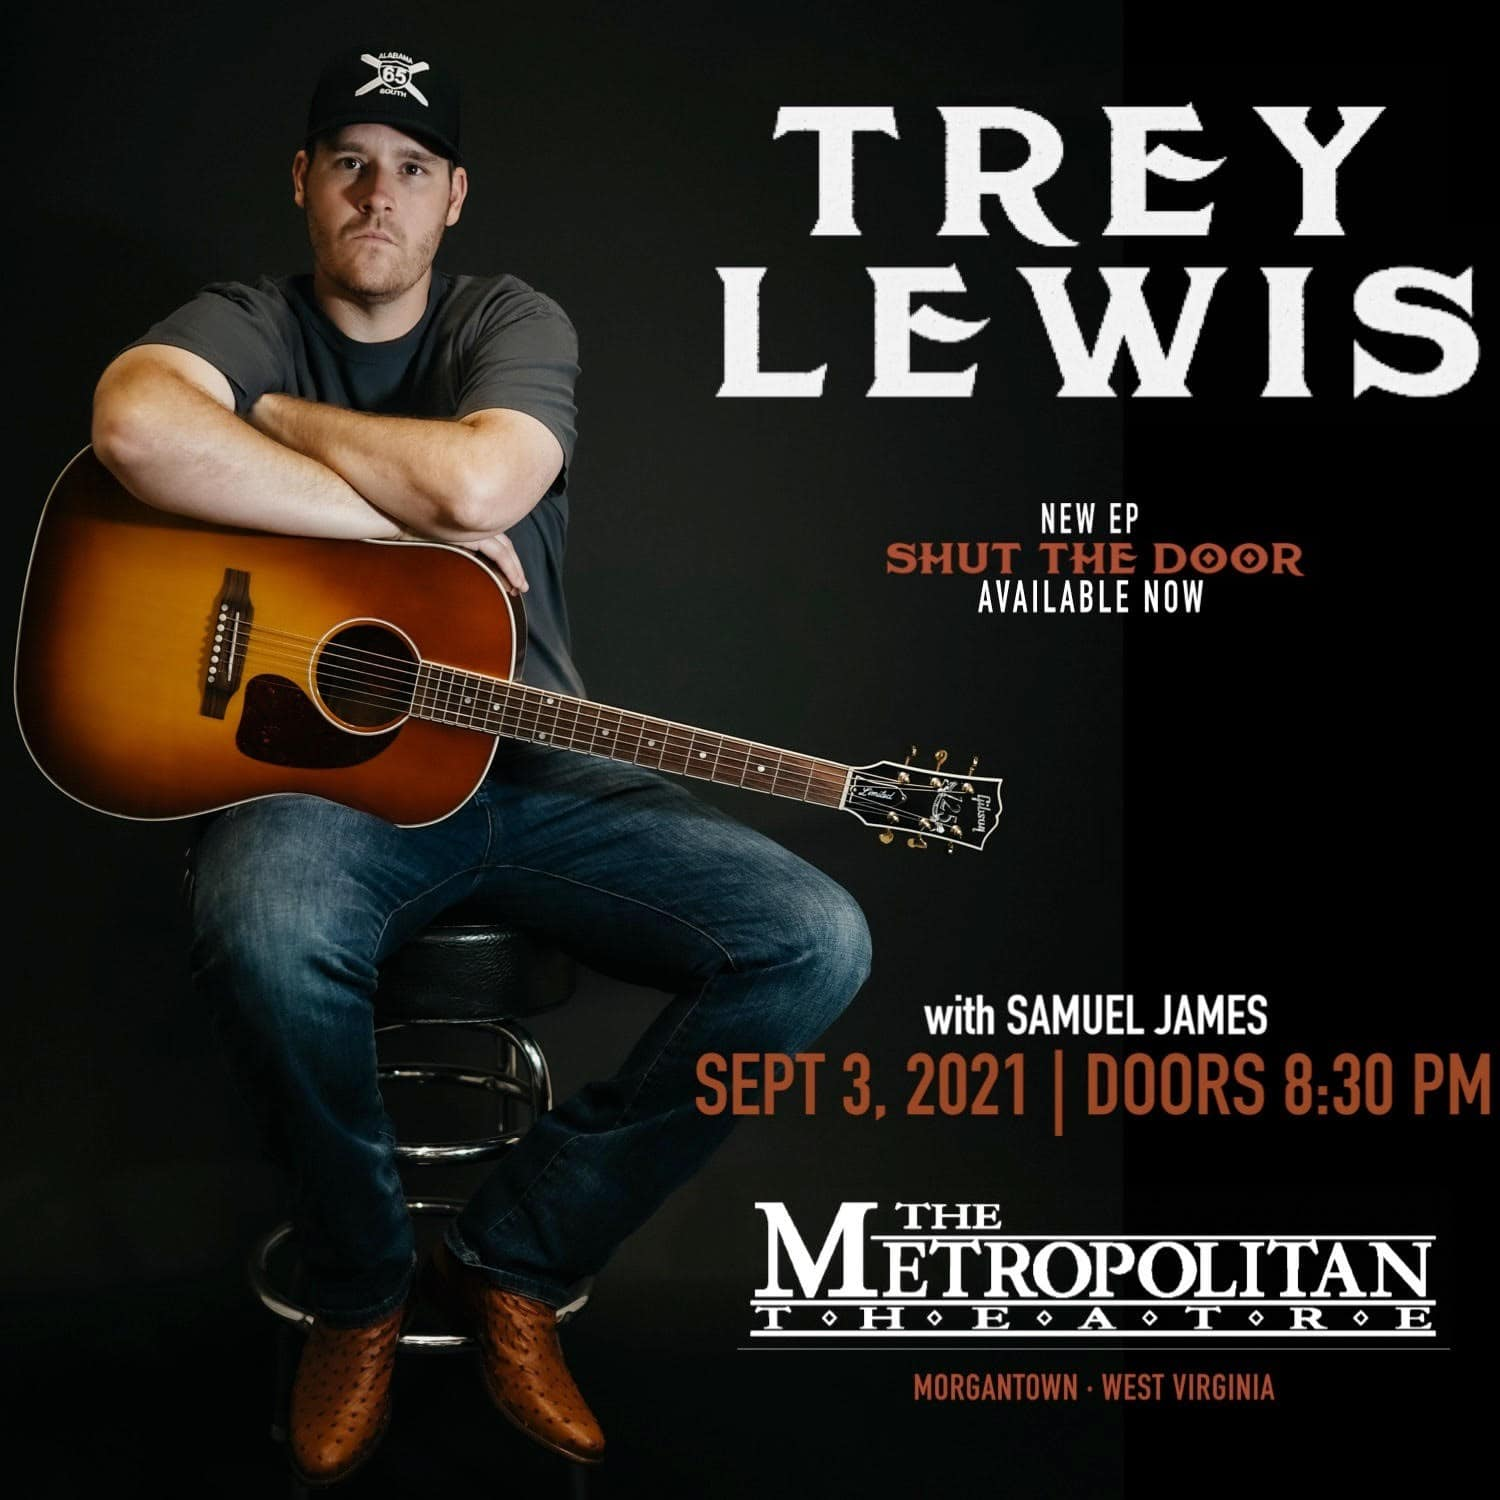 Trey Lewis live at The Metropolitan Theatre with Samuel James on September 3, 2021 at 8:45 p.m.